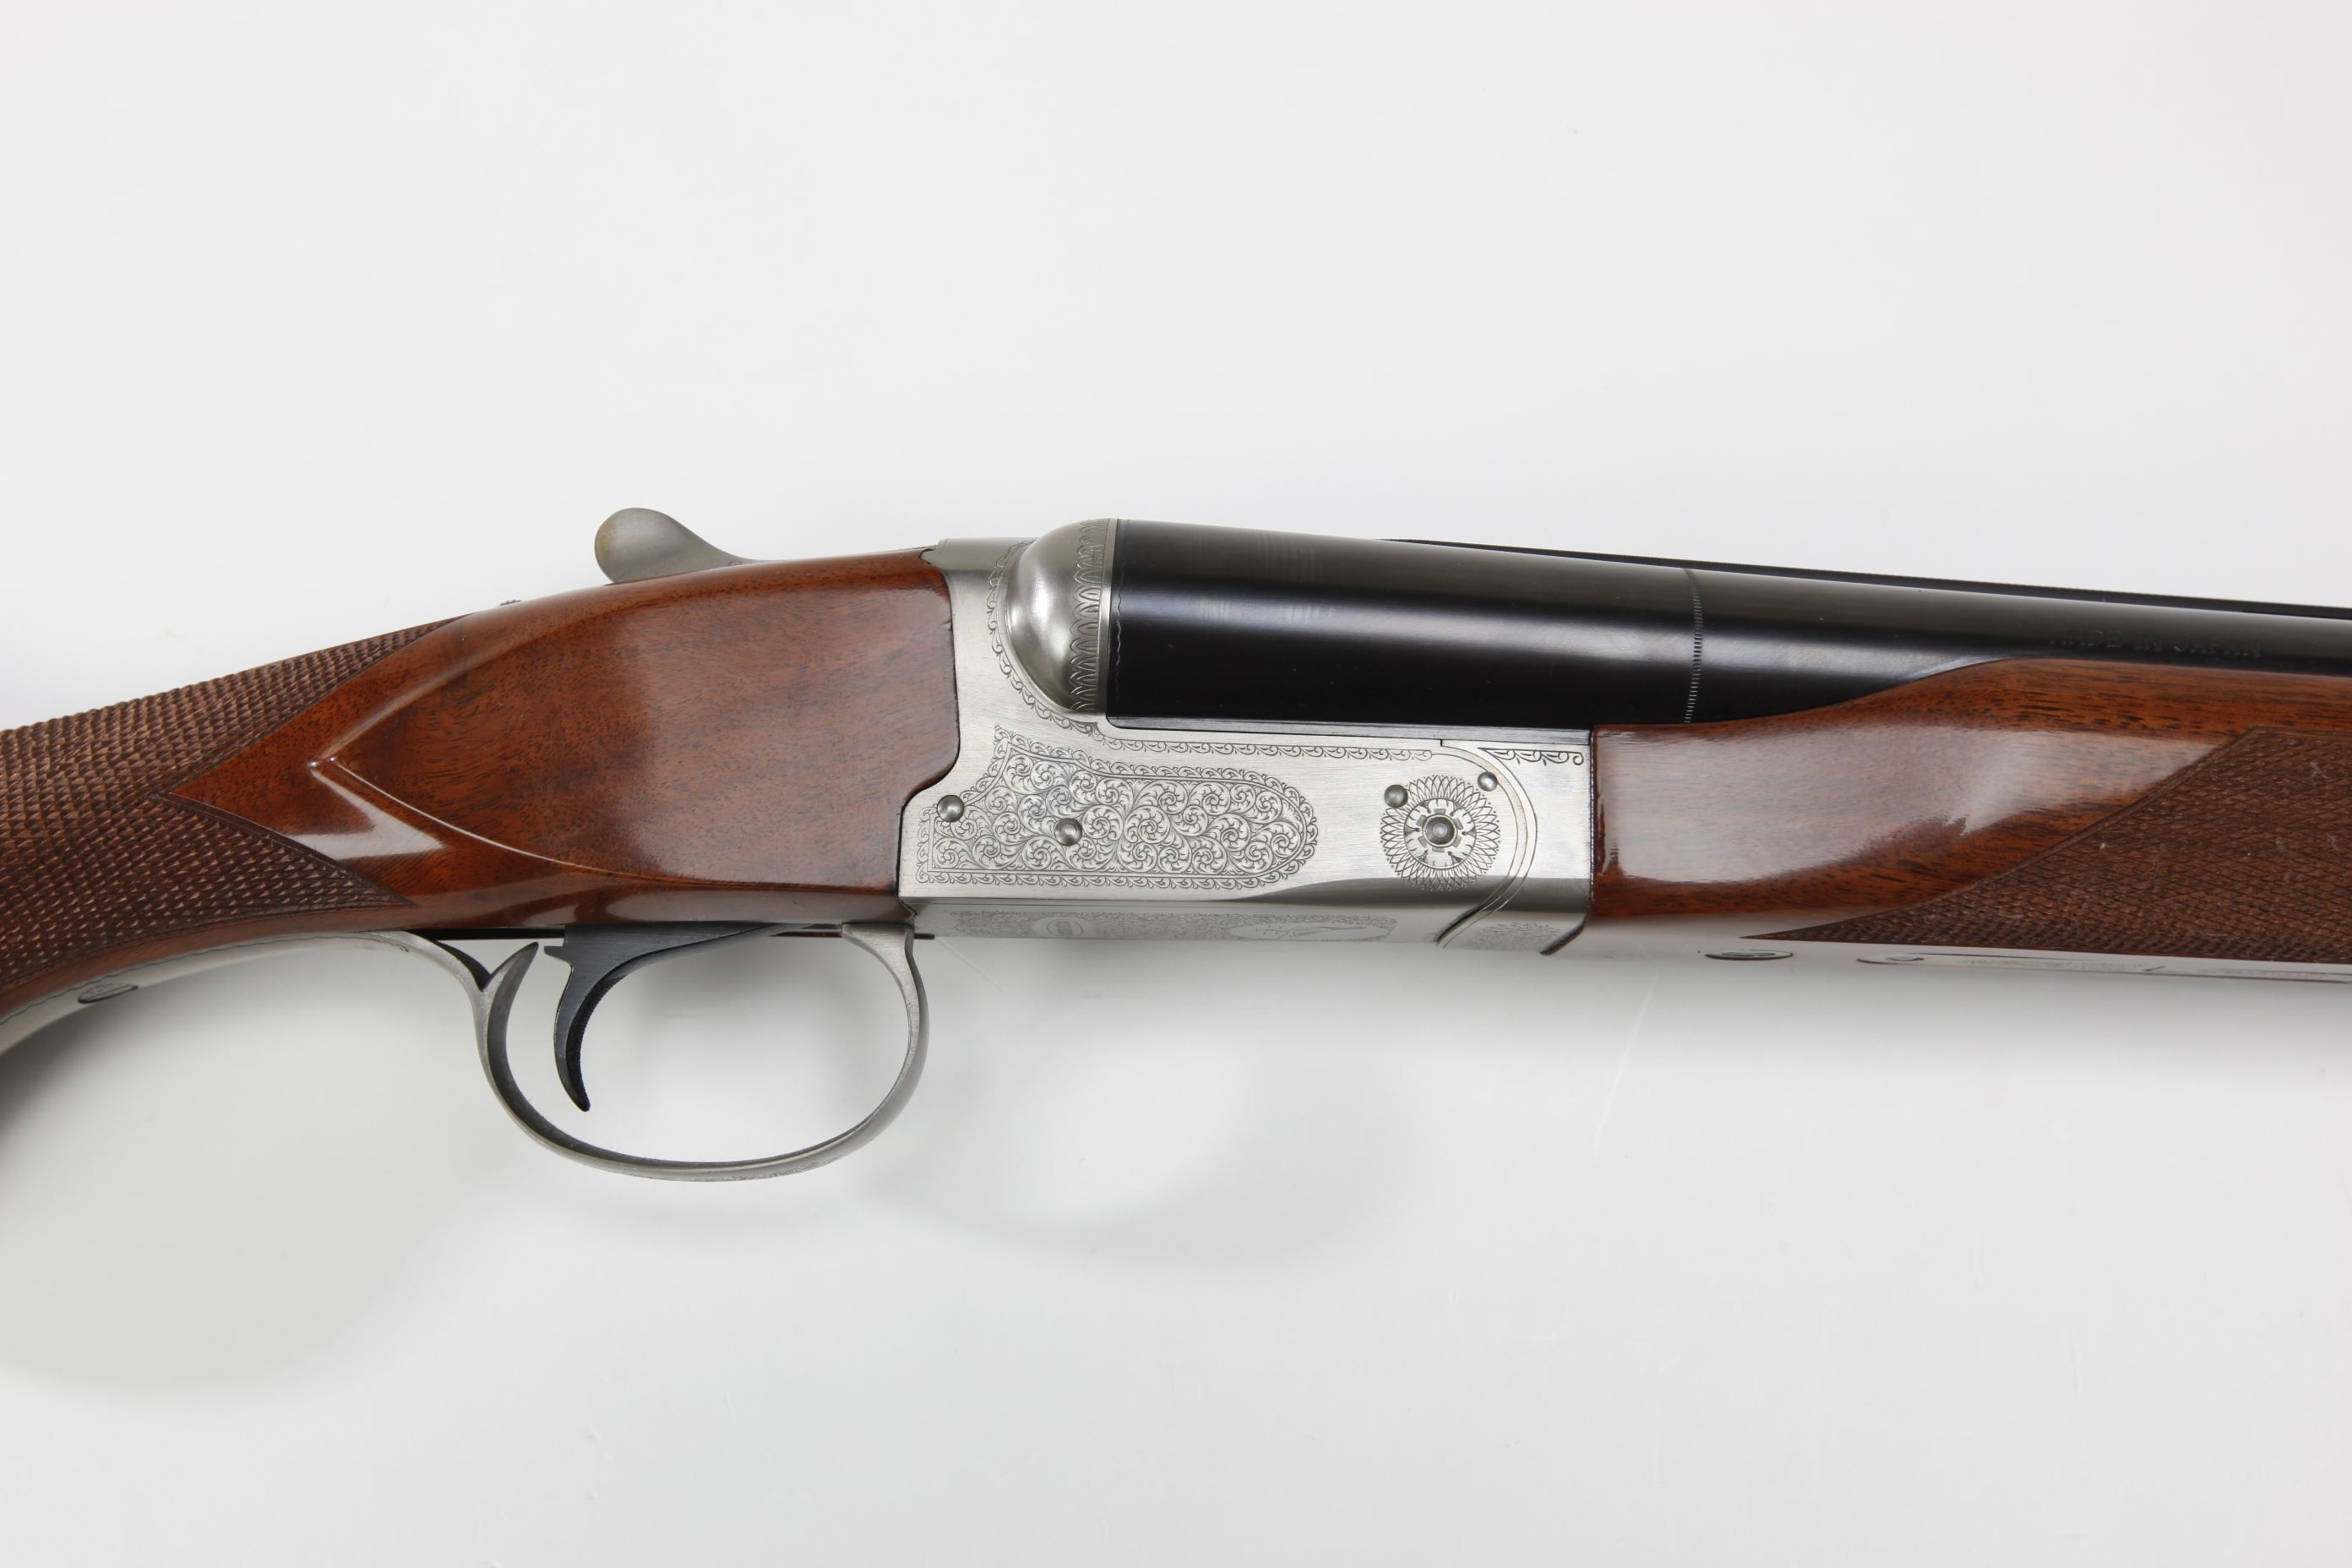 Winchester Model 23 XTR Pigeon-Grade Side-by-Side Shotgun